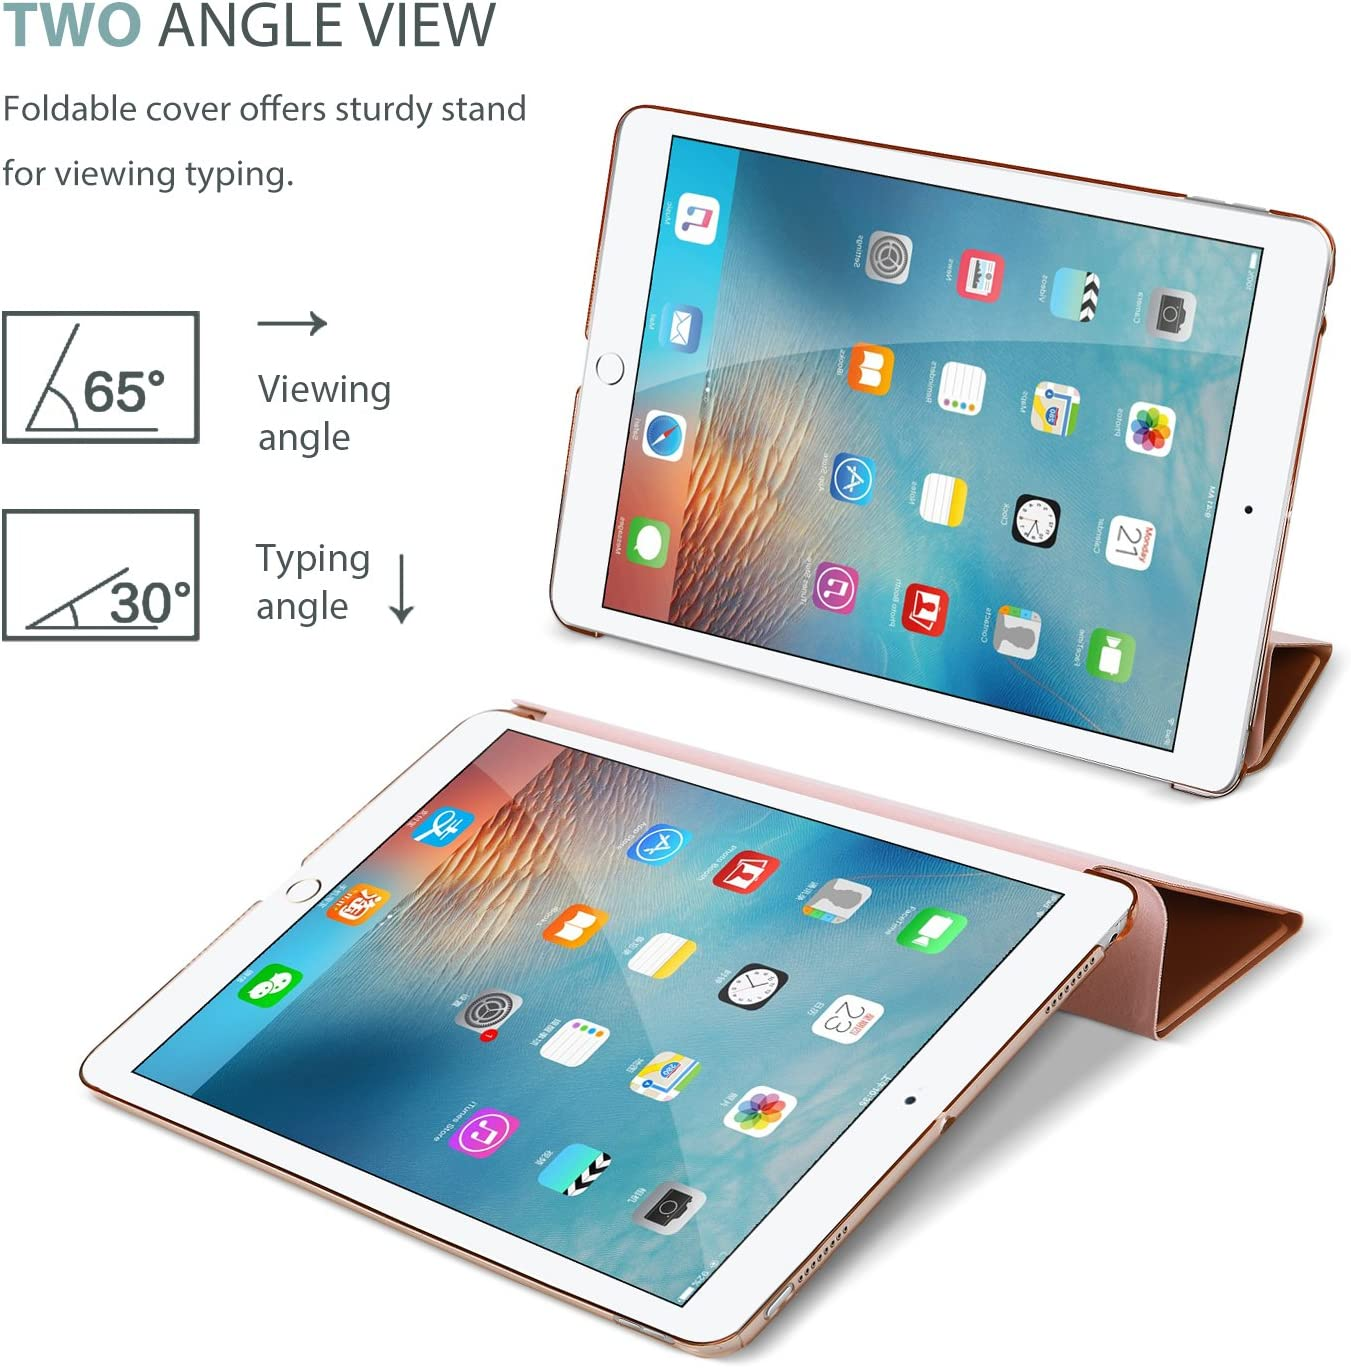 2019 iPad Pro Case 10.5 2017 Ultra Slim Lightweight Stand Smart Case with Translucent Frosted Back Cover with Auto Sleep//Wake Feature ProCase Apple 10.5 New iPad Air Silver 3rd Gen